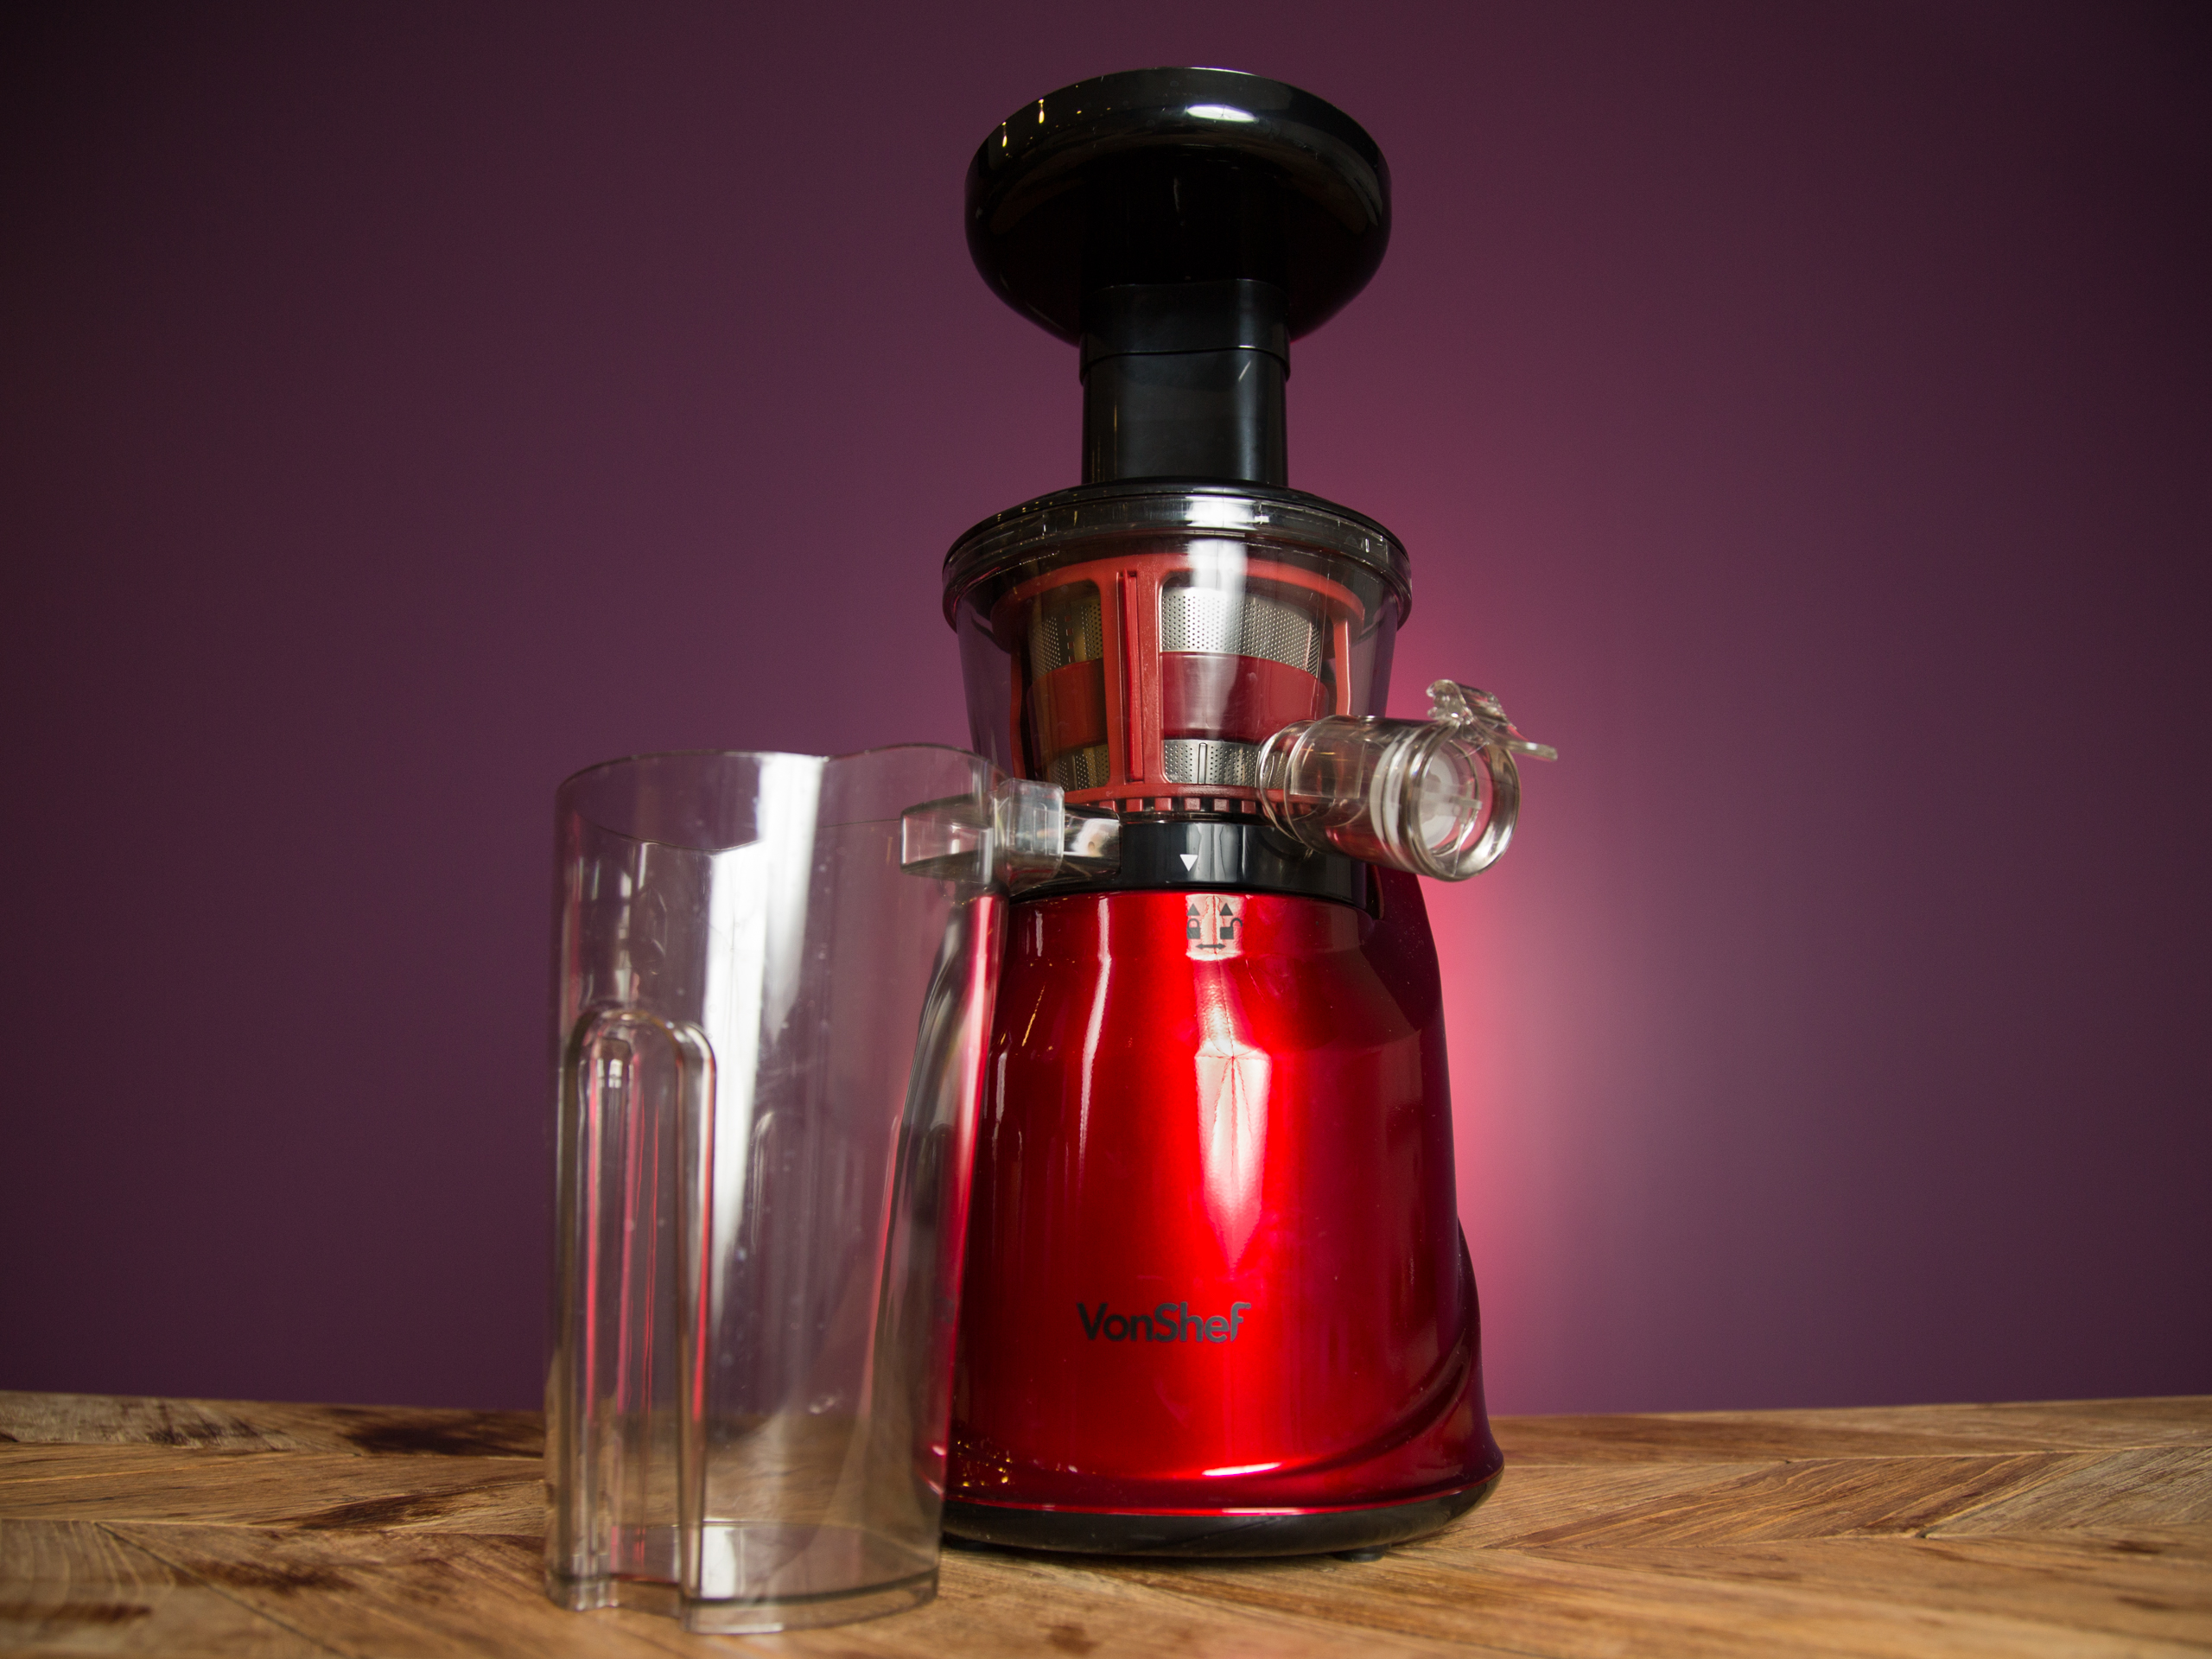 vonShef Premium Slow Masticating Juicer review - OmniFeed